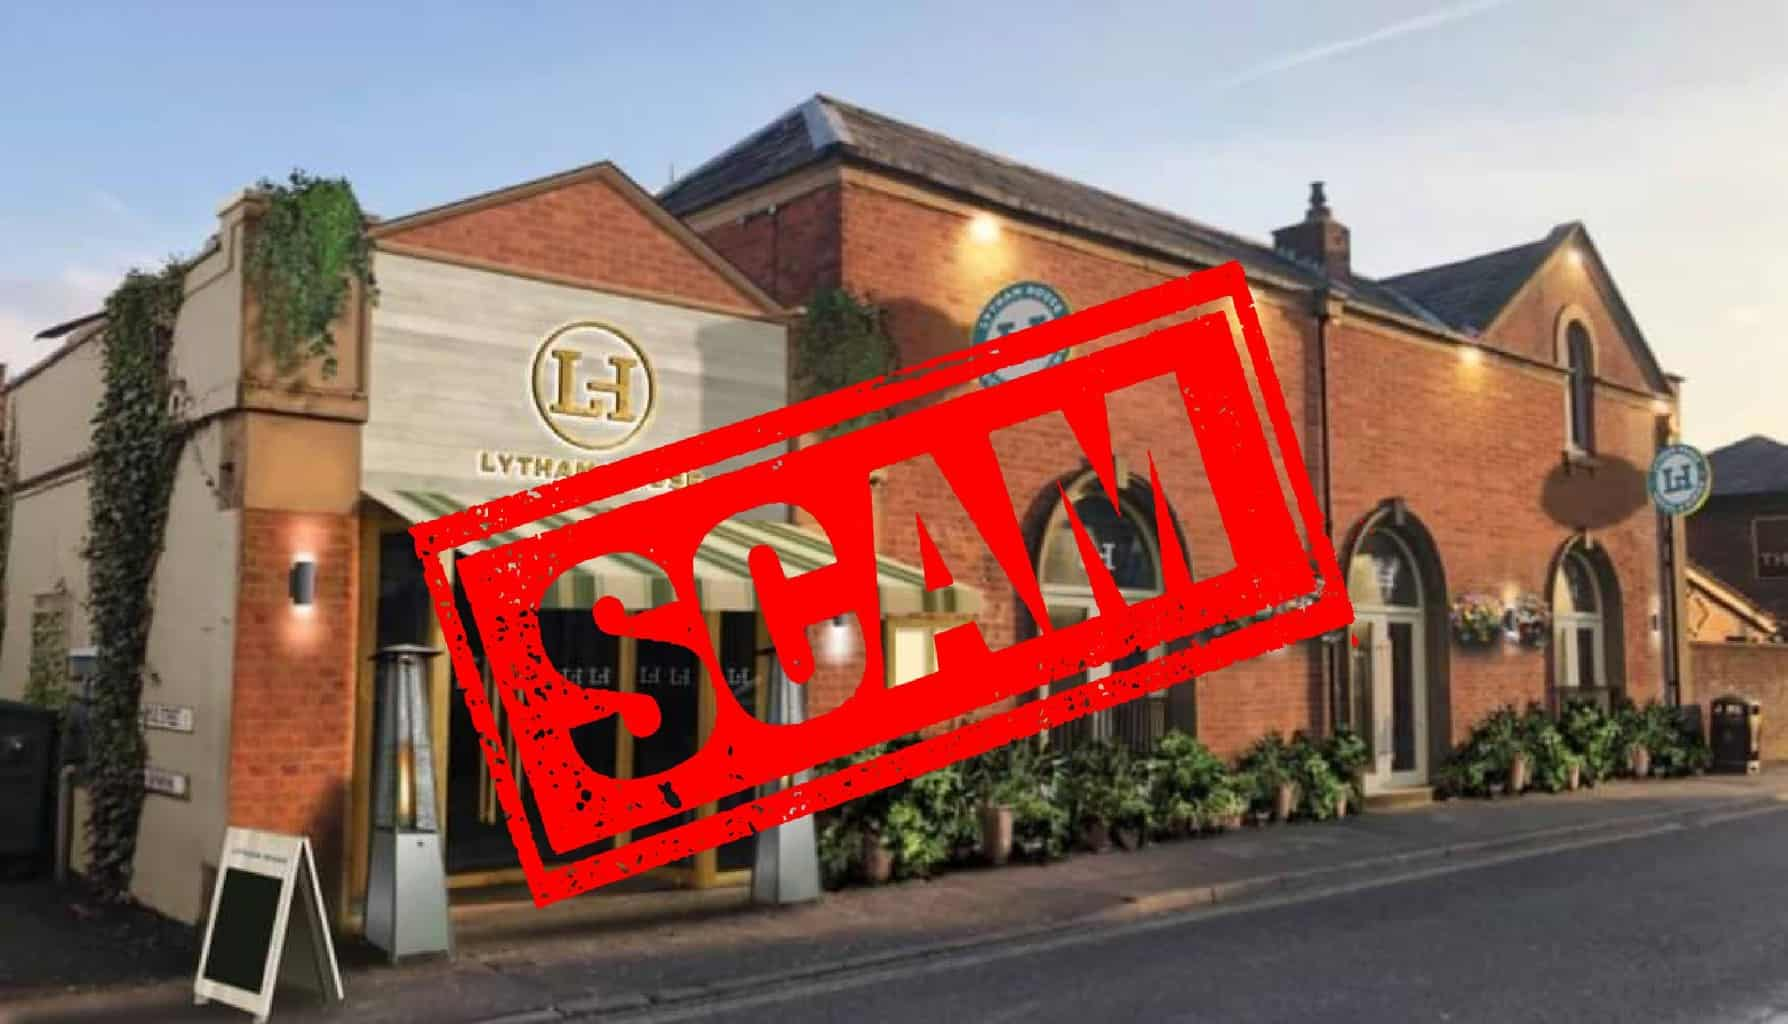 SCAM ALERT: Facebook scammers pose as new restaurant, Lytham House